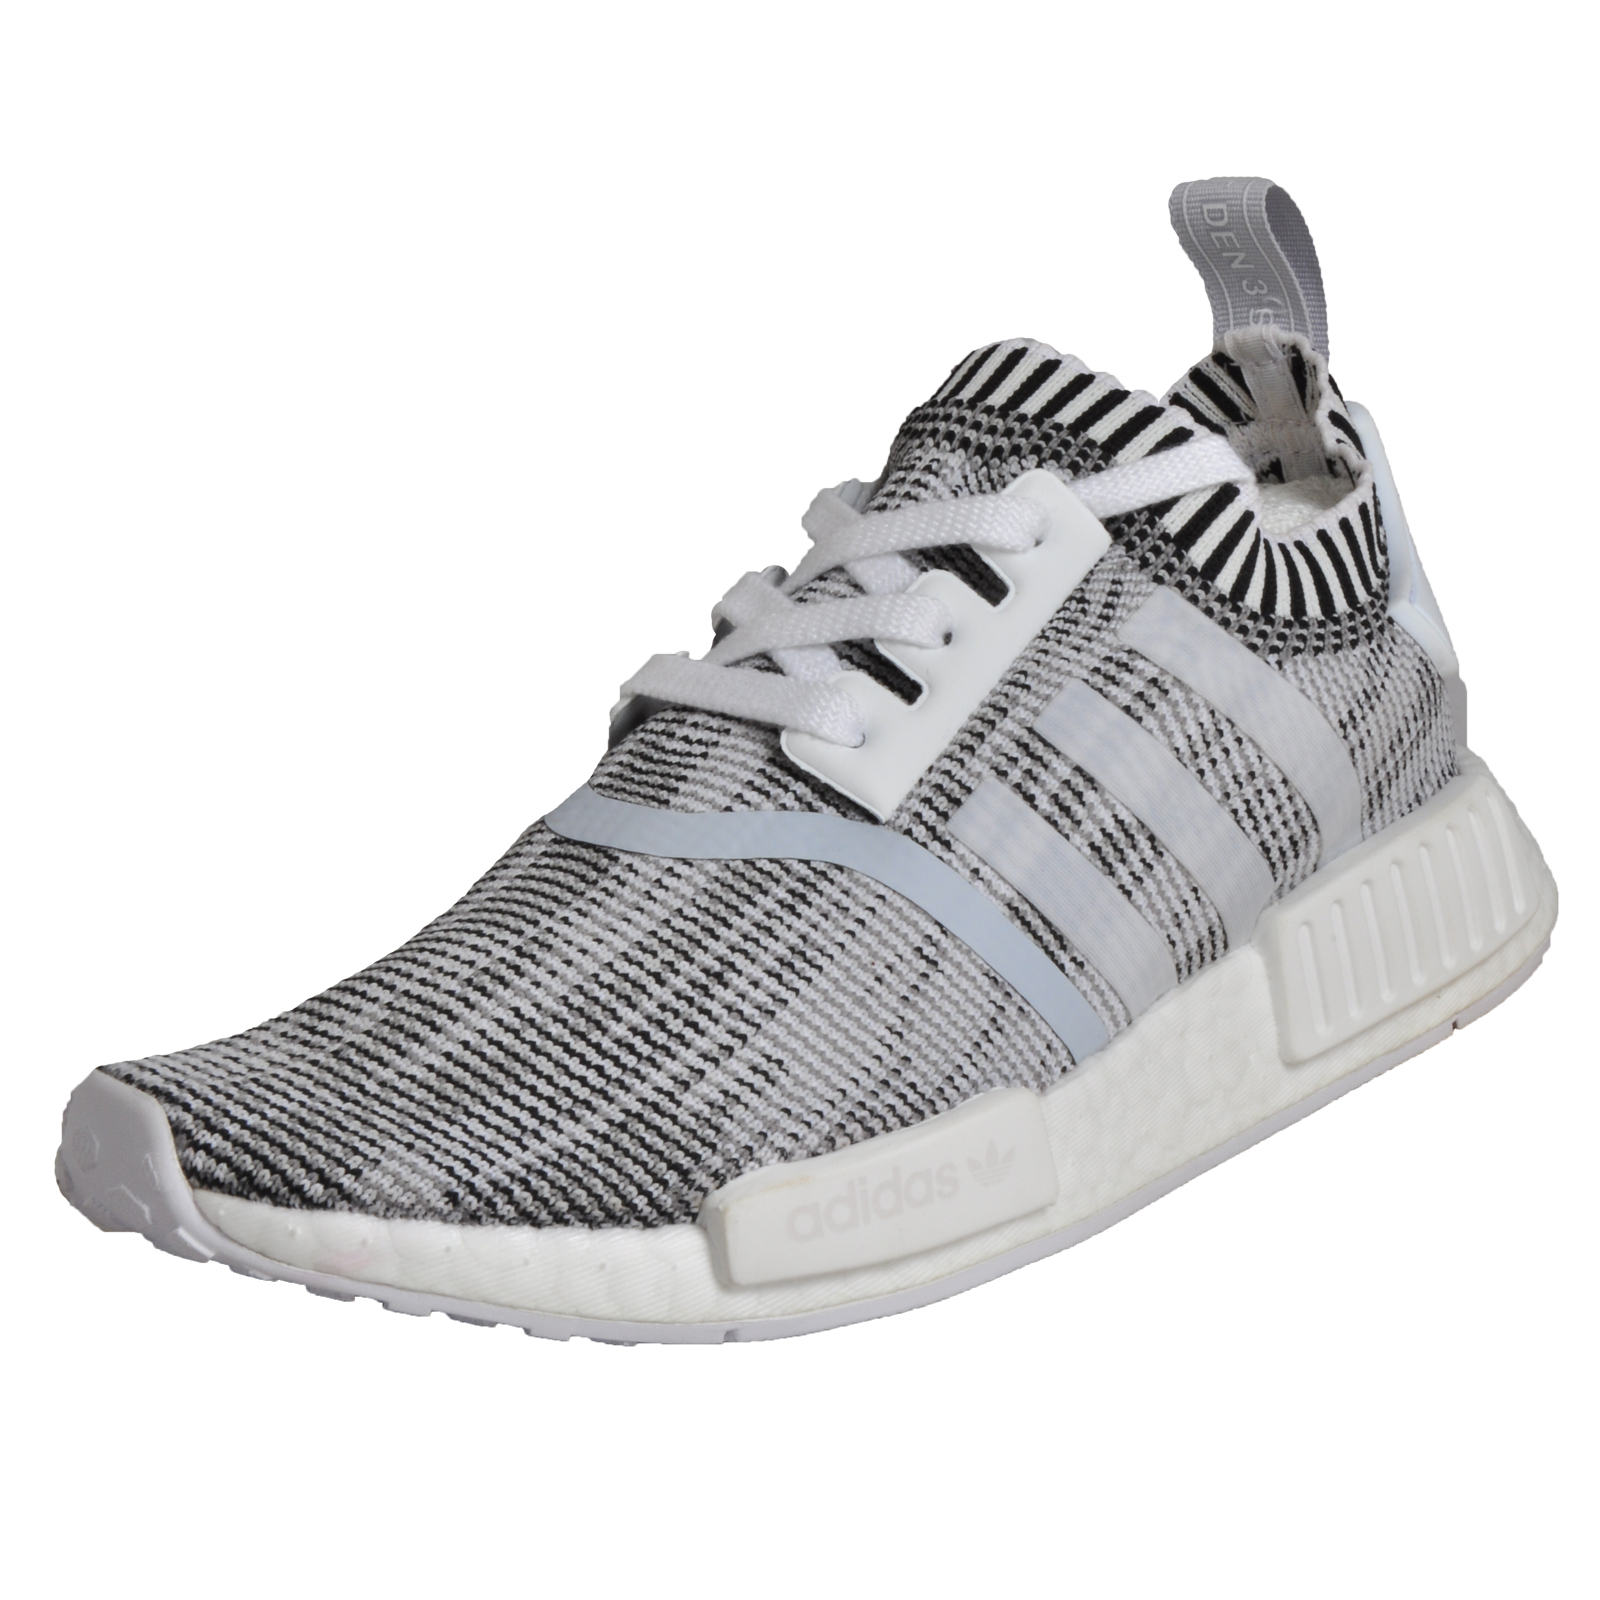 f419aa9836f54 Adidas Originals NMD R1 PIC Oreo Women s Running Shoes Retro Fashion  Trainers UK 5 ONLY